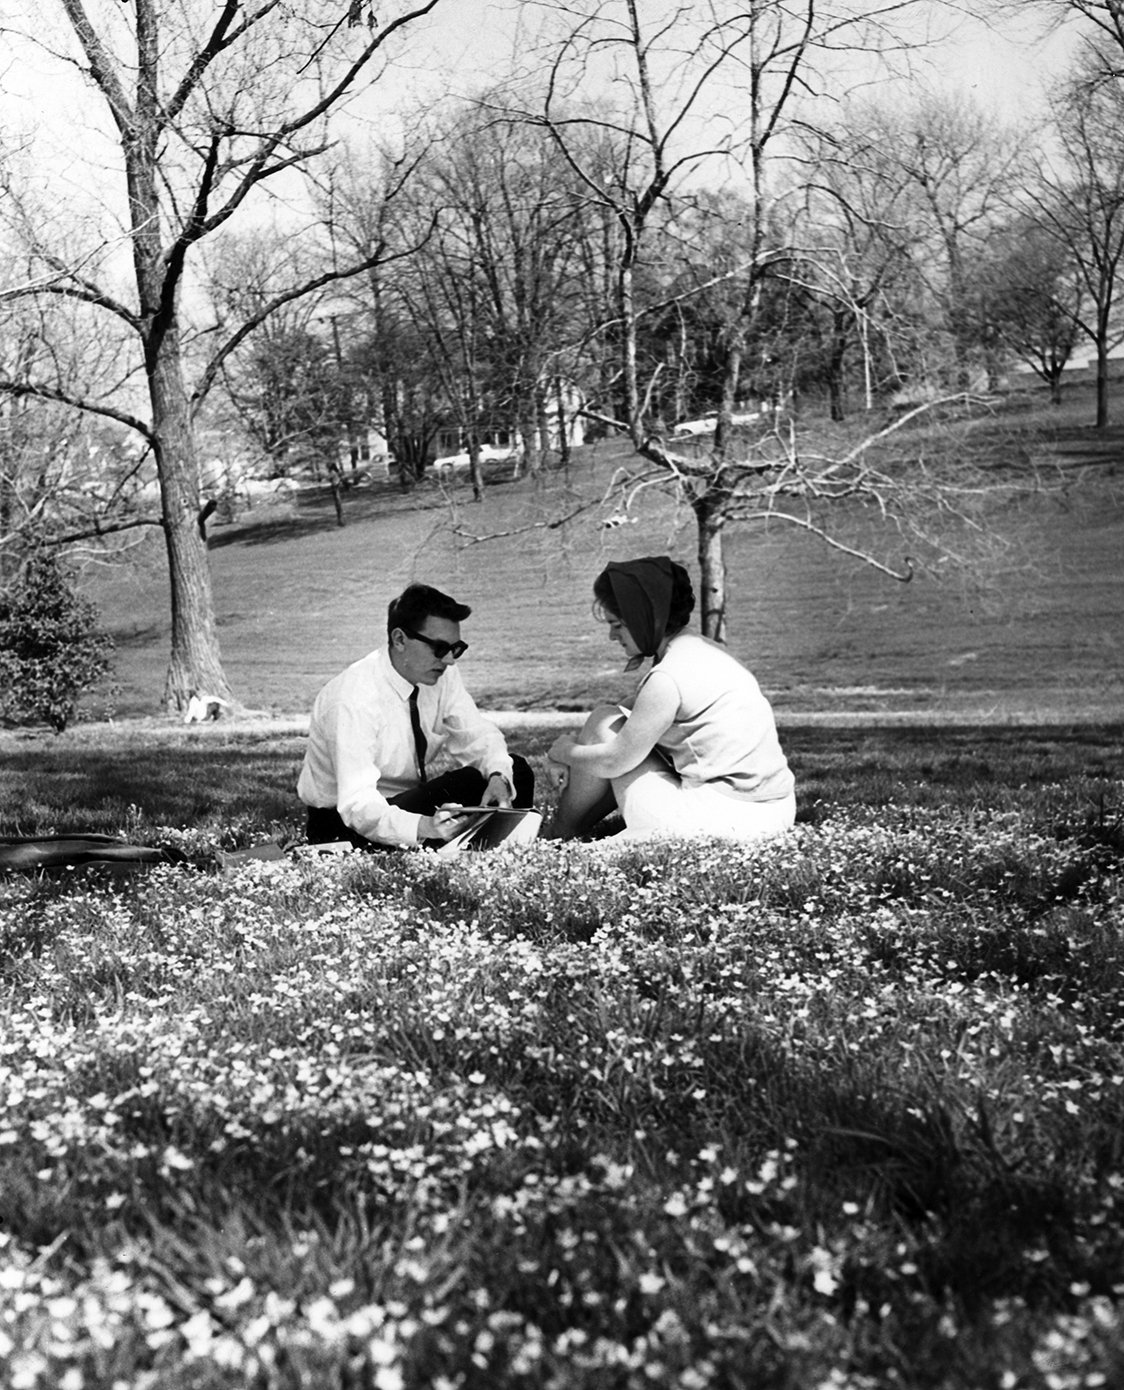 Students in the Ravine, 1967.  EKU Photo Collection.